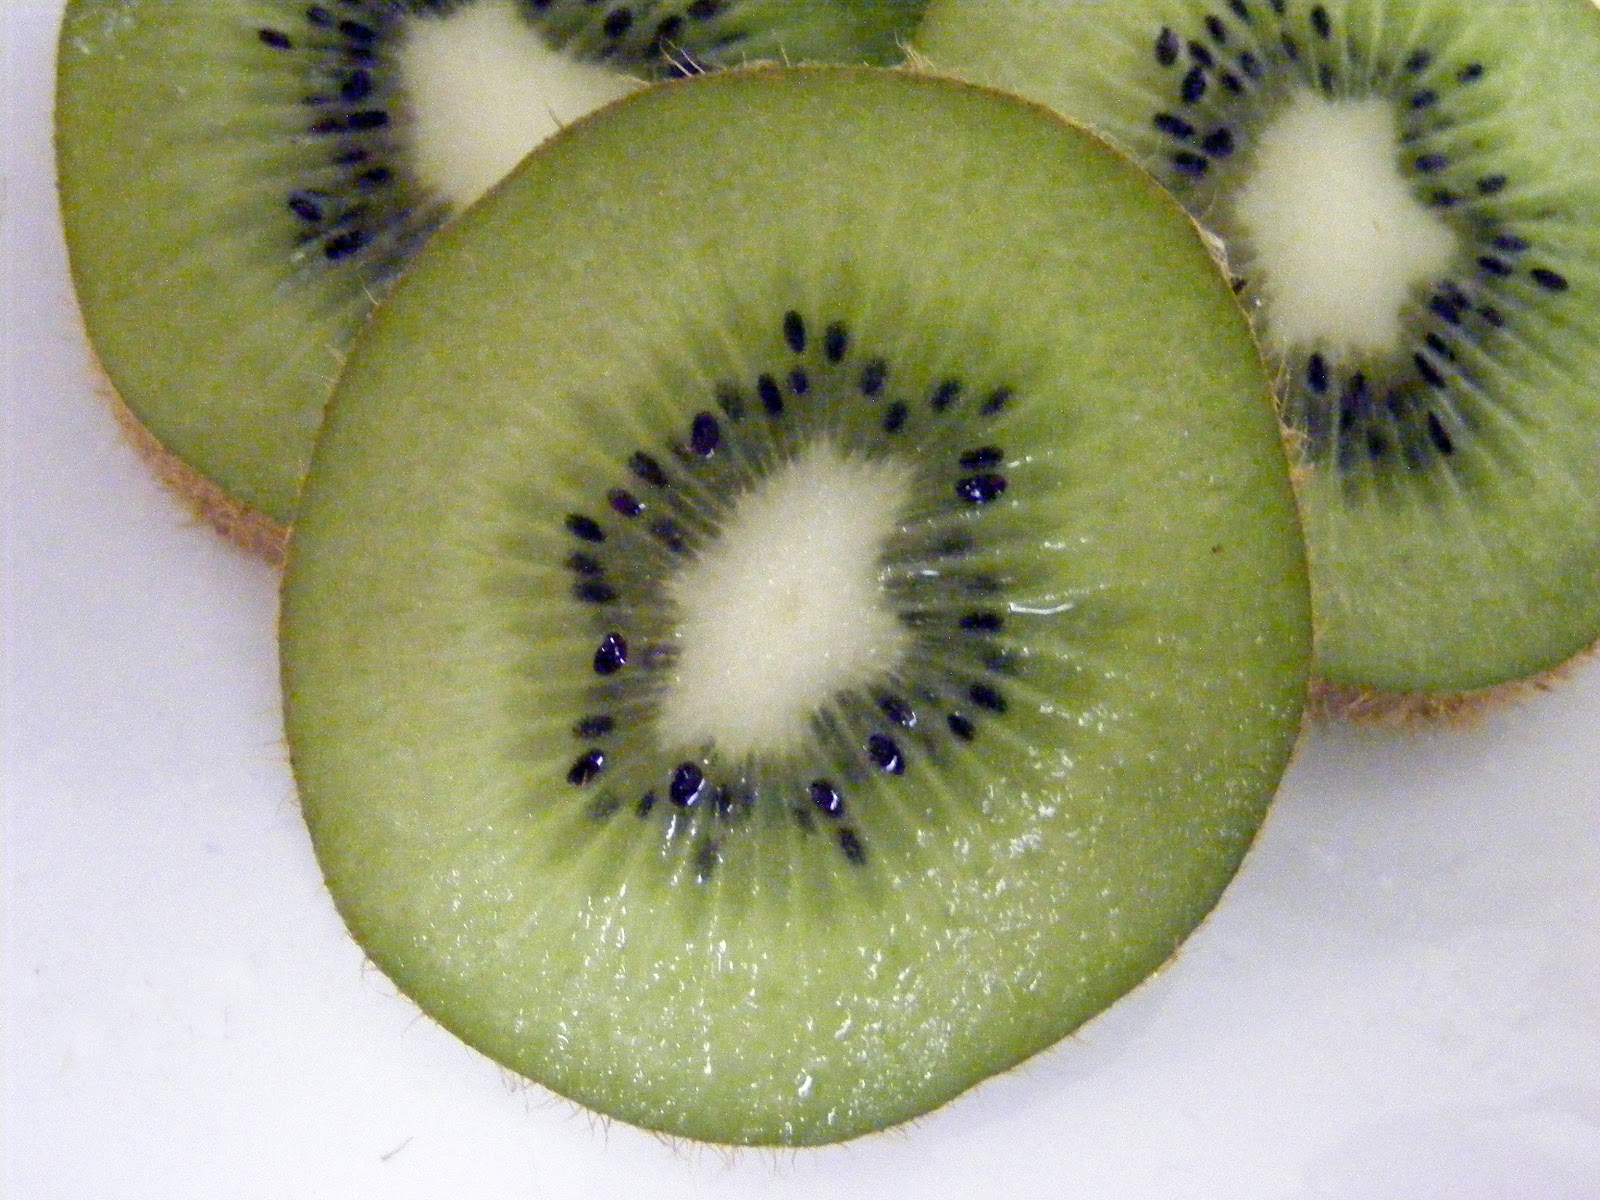 File:Kiwifruit, slice.jpg